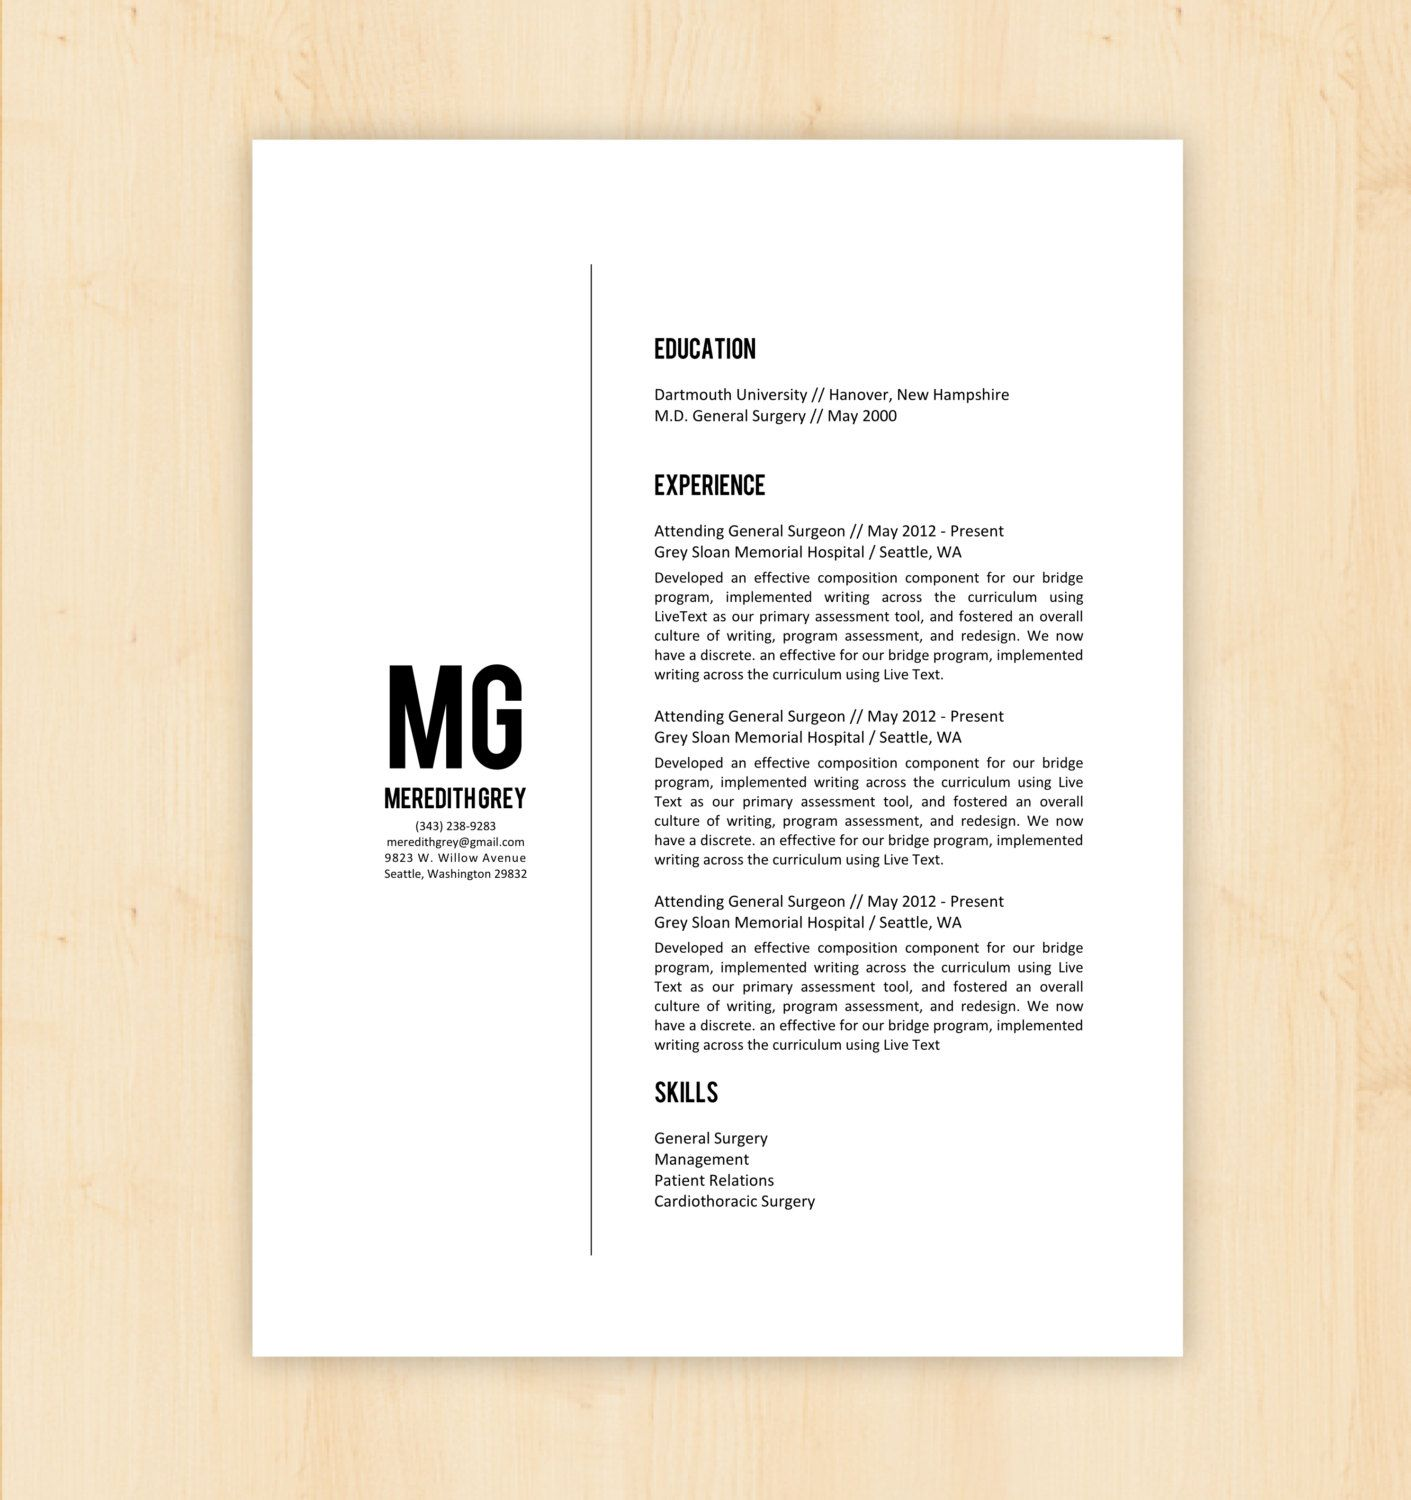 resume template cover letter template w reference page resume template cv template the meredith grey resume design instant word document docx doc format